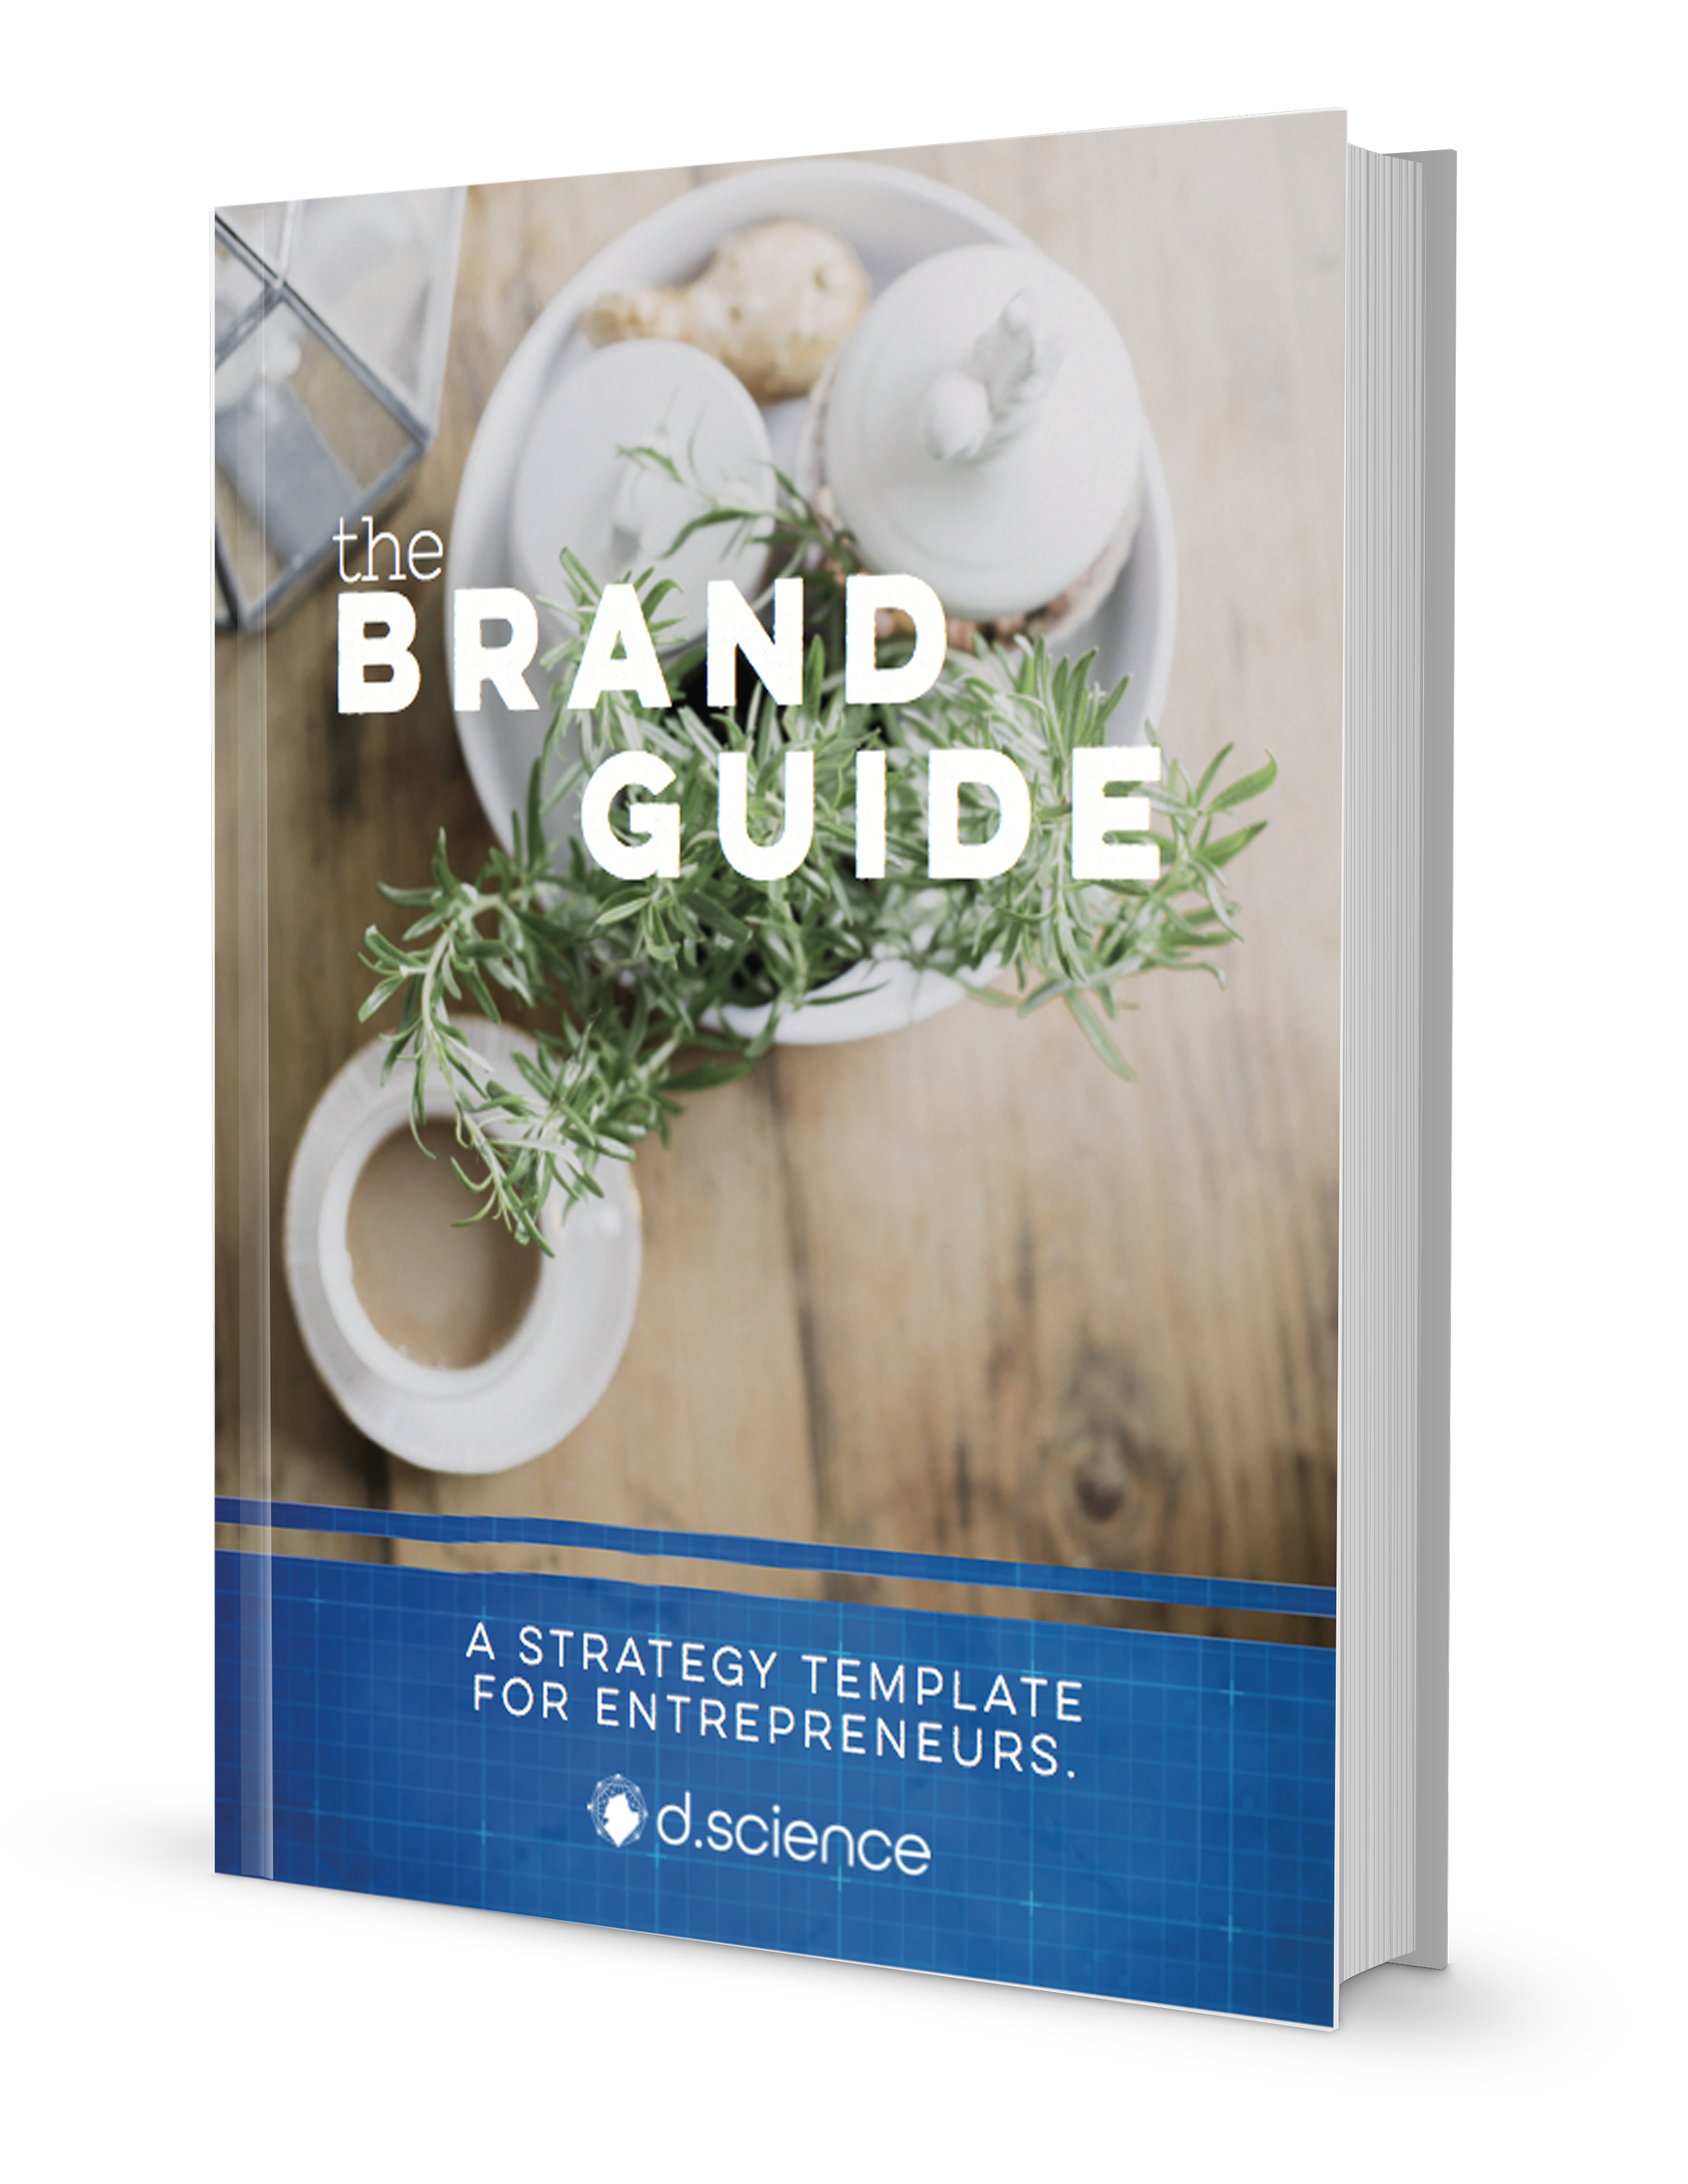 Brand strategy template